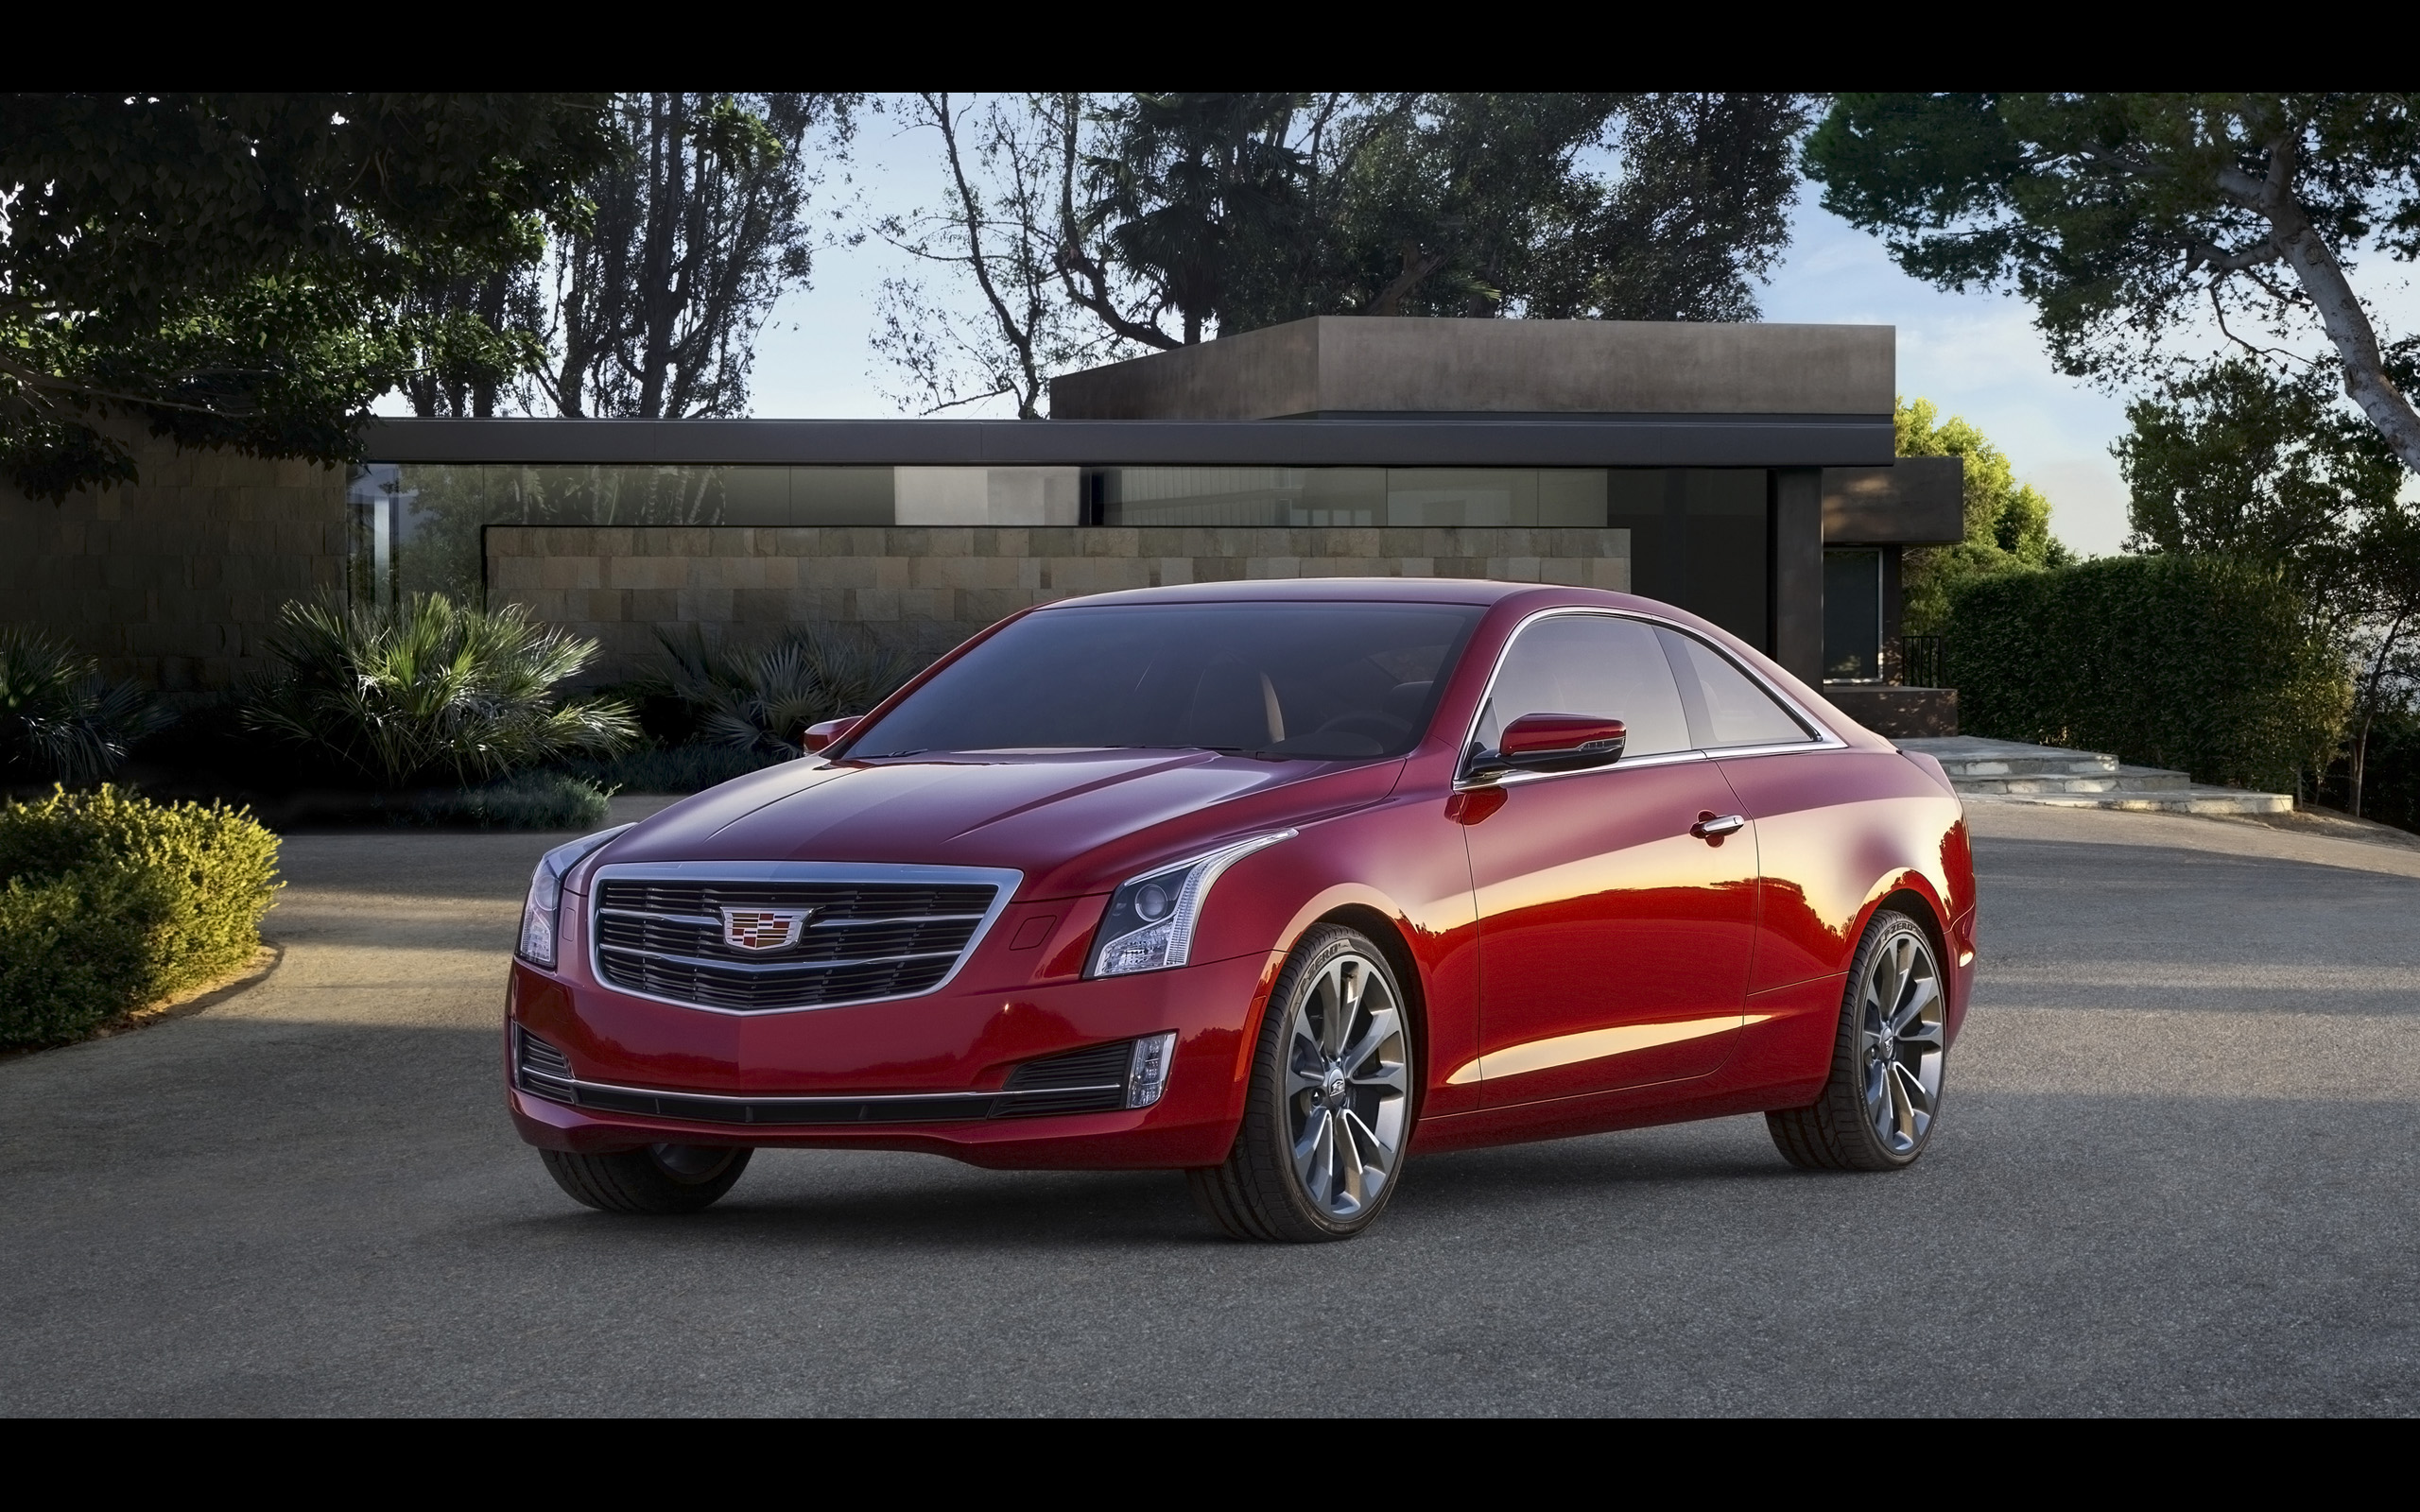 2015 Cadillac ATS Coupe by ThexRealxBanks